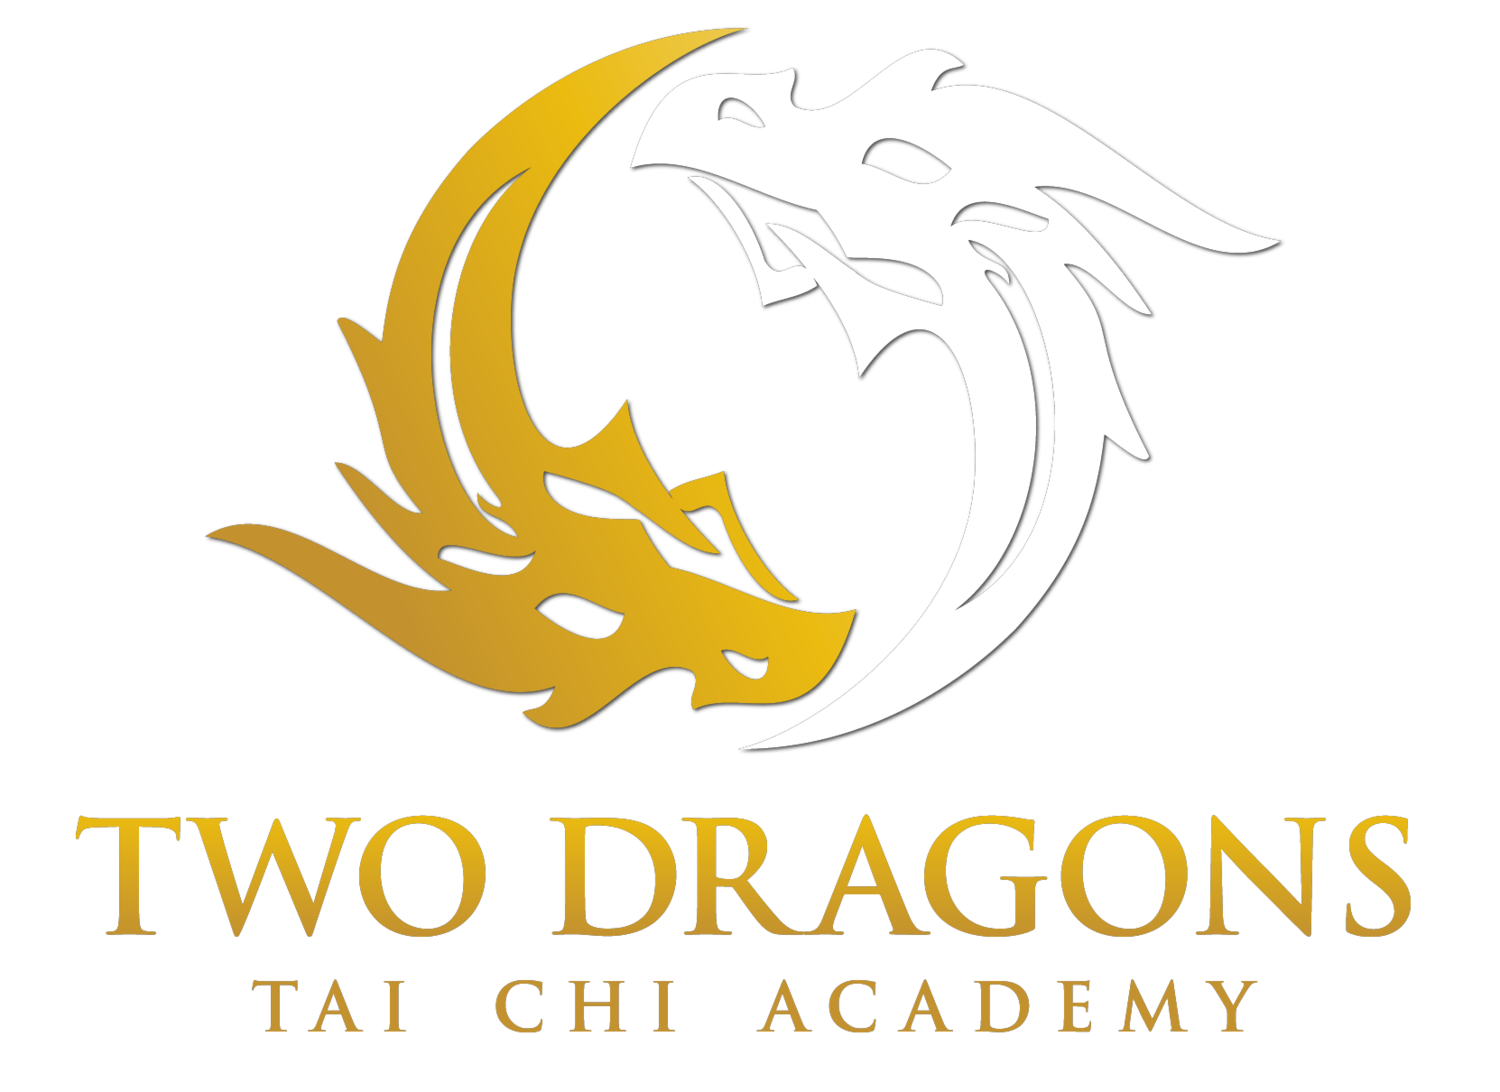 Two Dragons Tai Chi